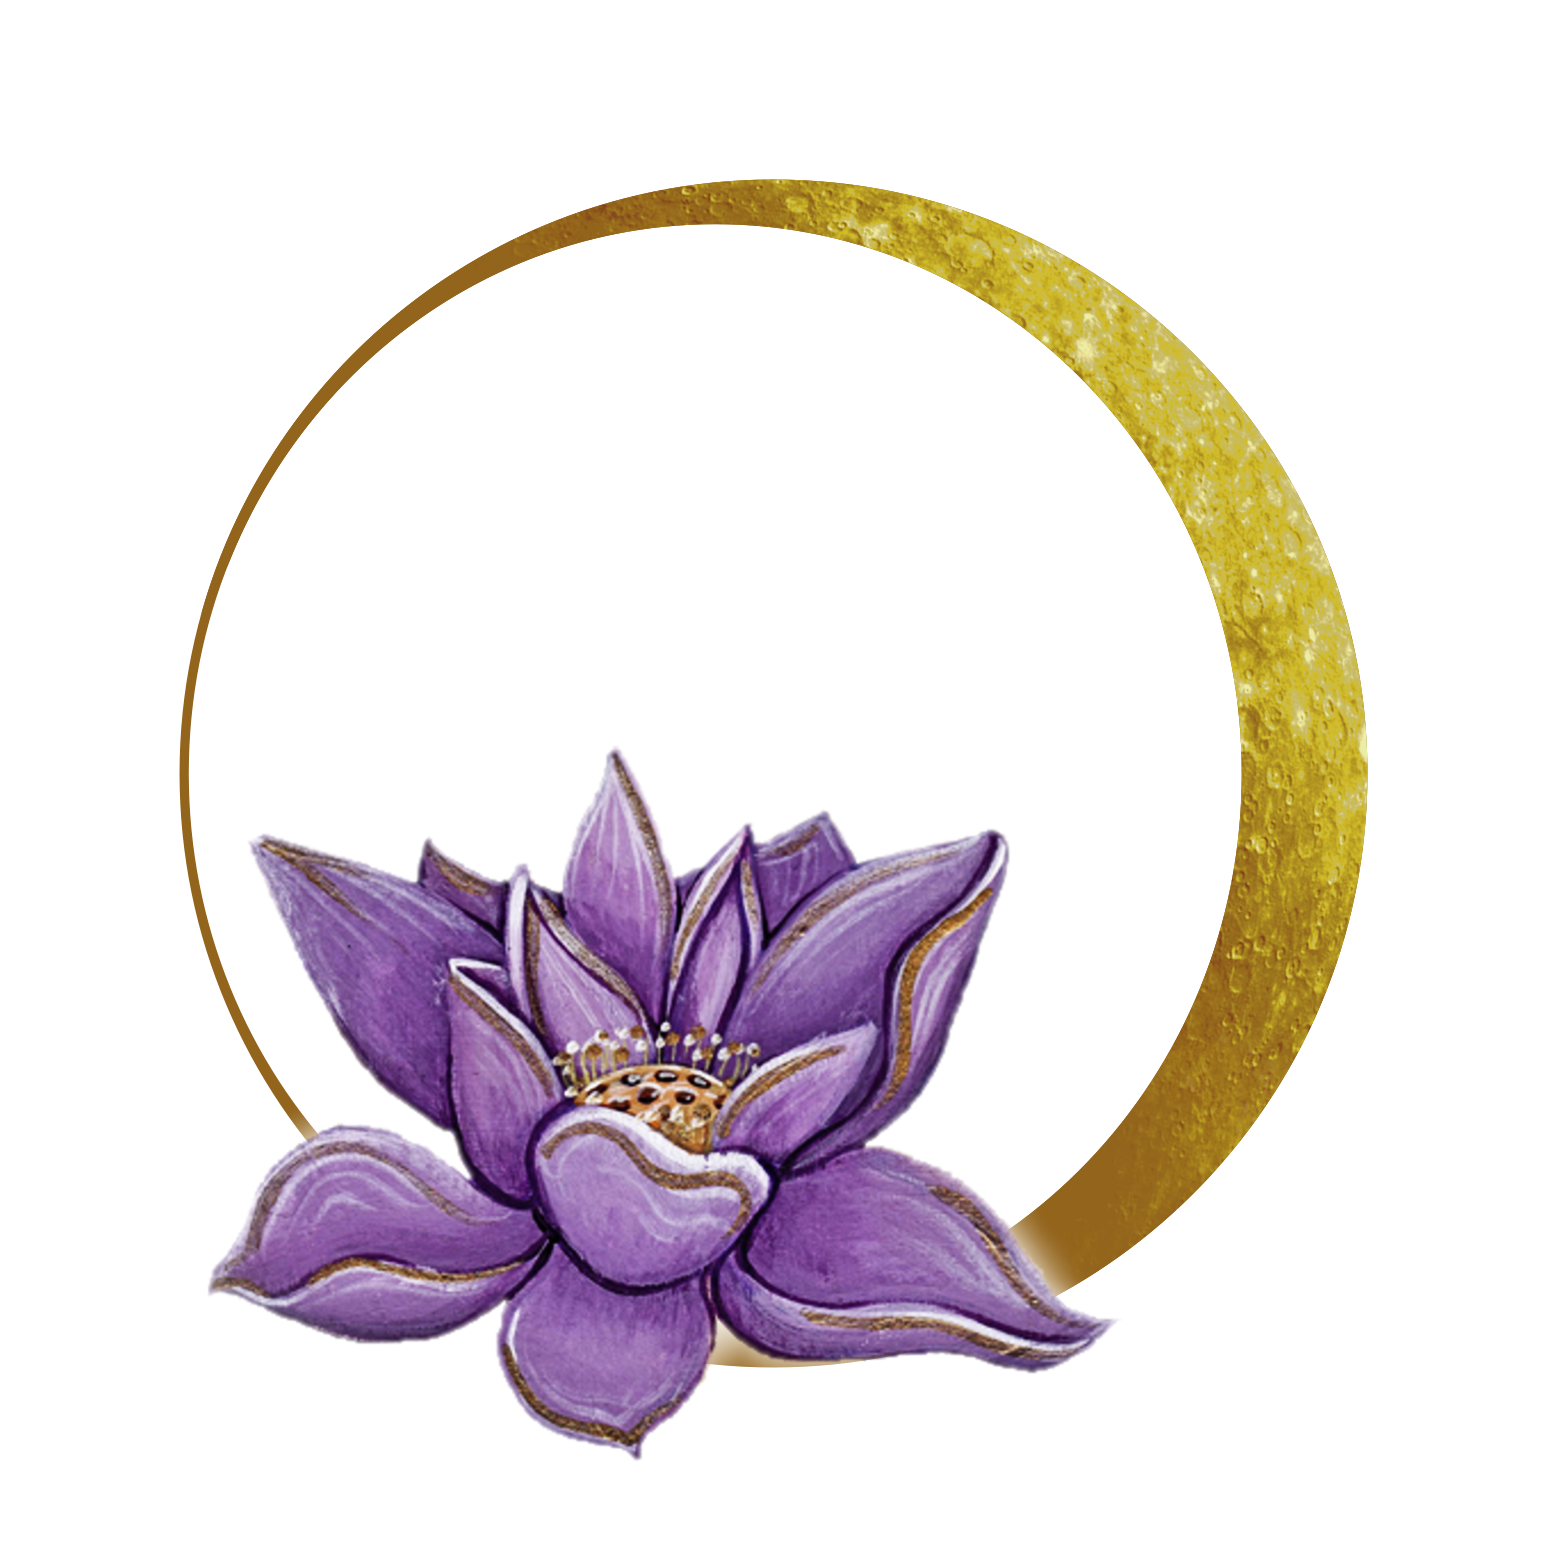 1547x1547 Celestial Drawing Lotus Flower Transparent Png Clipart Free